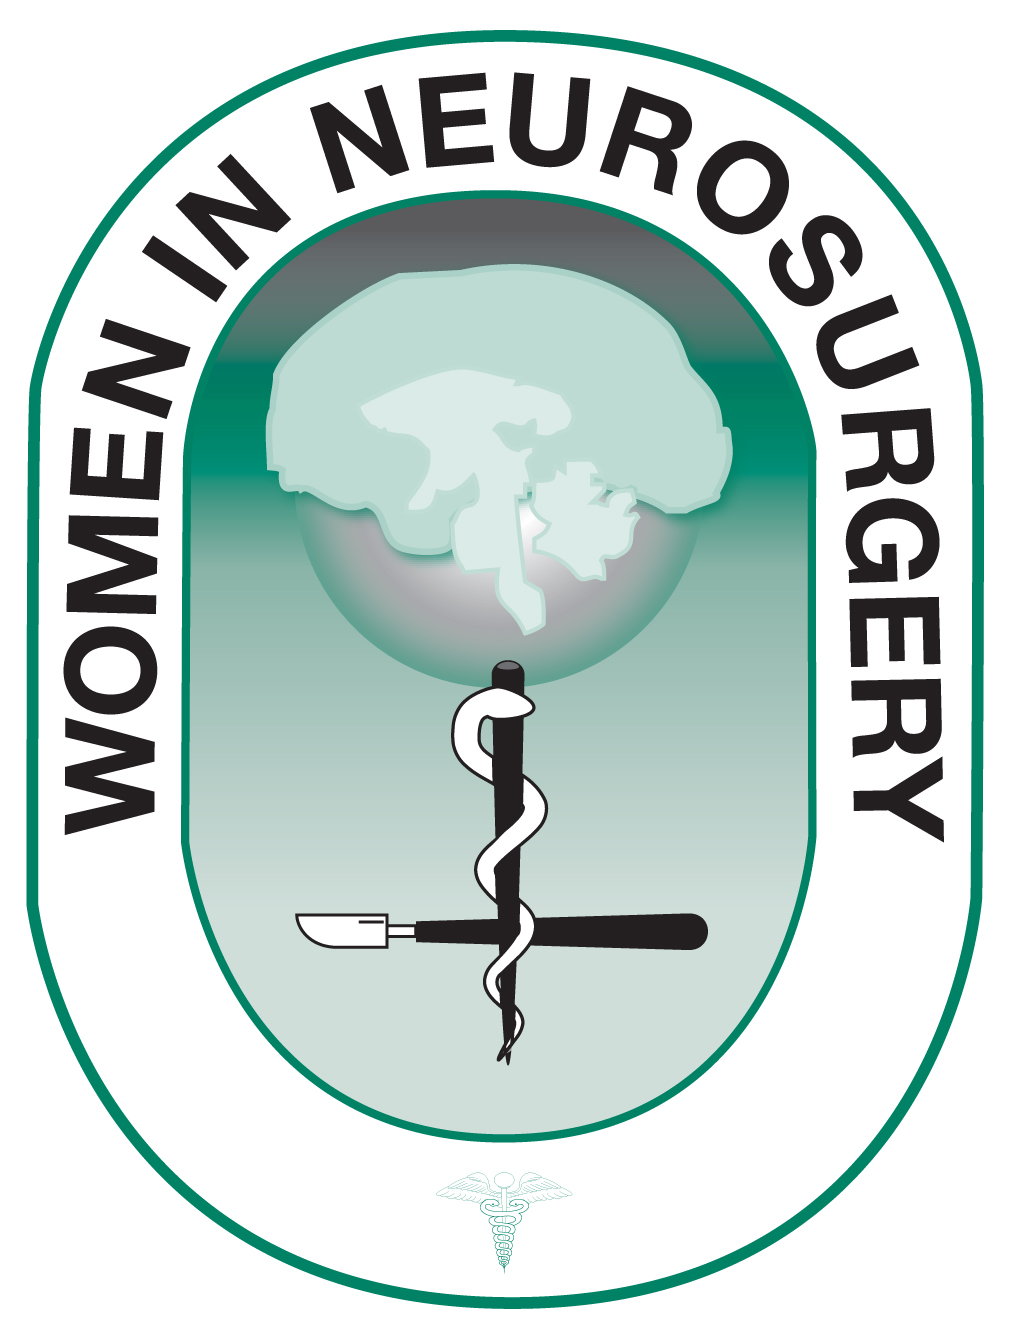 AANS/CNS Section on Women in Neurosurgery